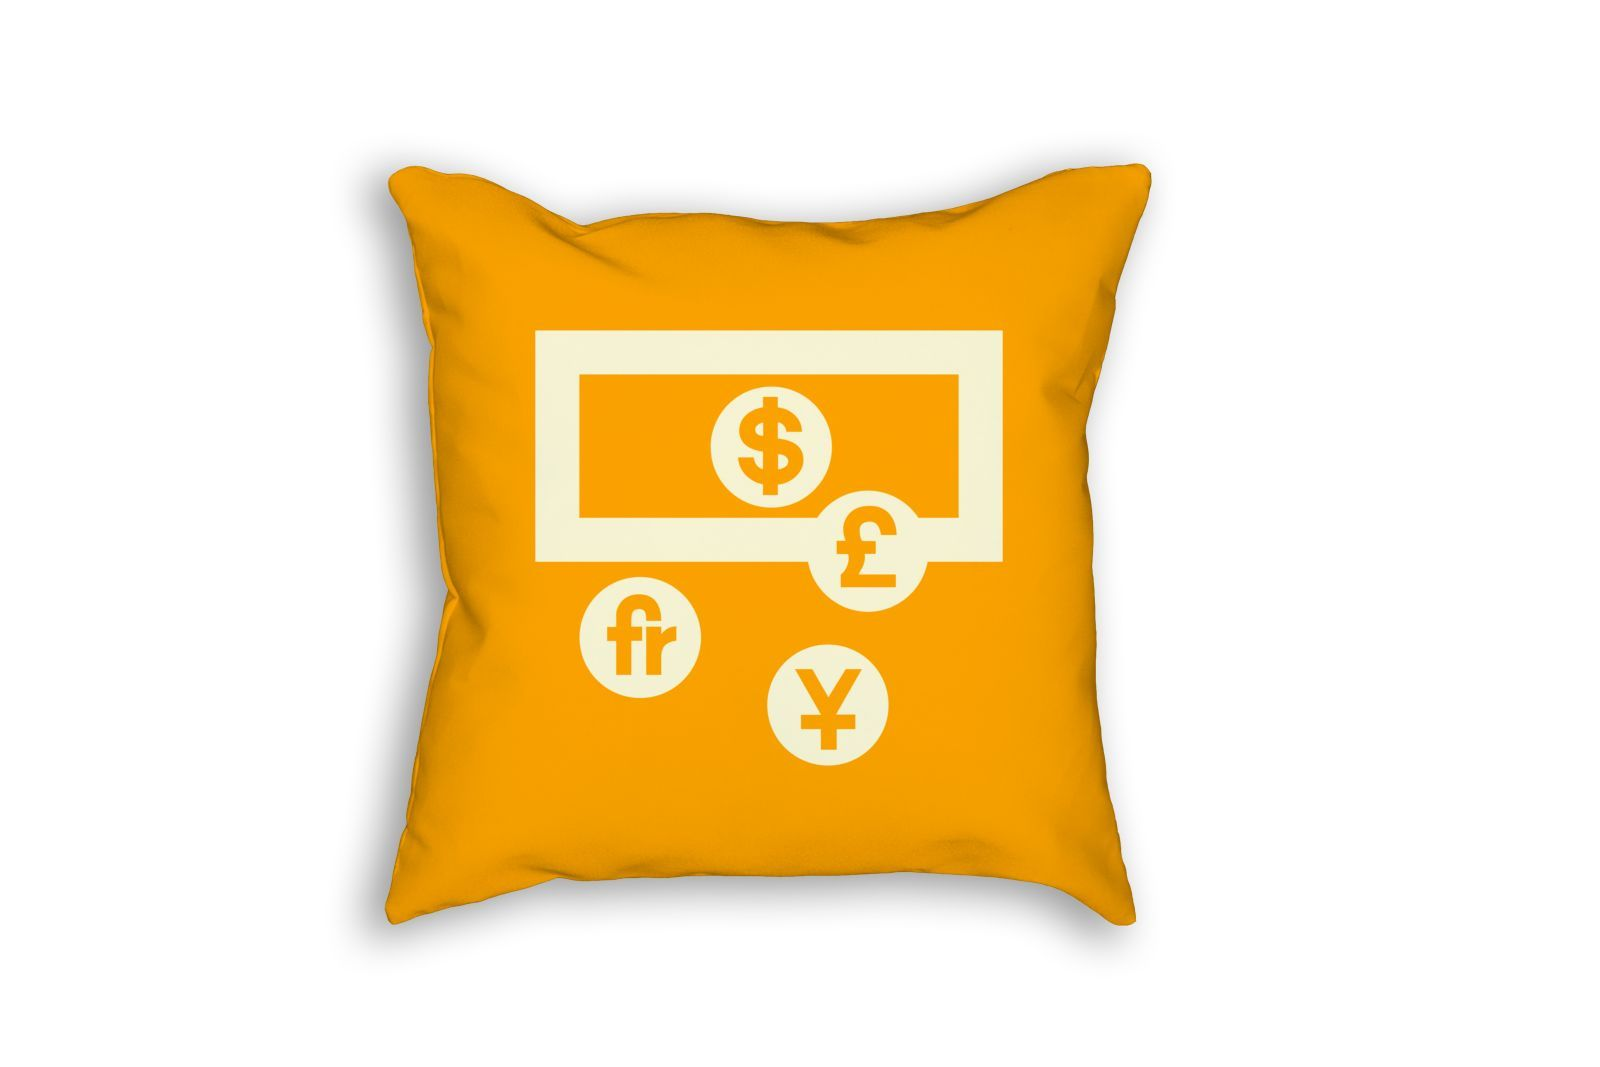 Currency exchange symbol graphic design pillow symbols pillows currency exchange symbol graphic design pillow biocorpaavc Images